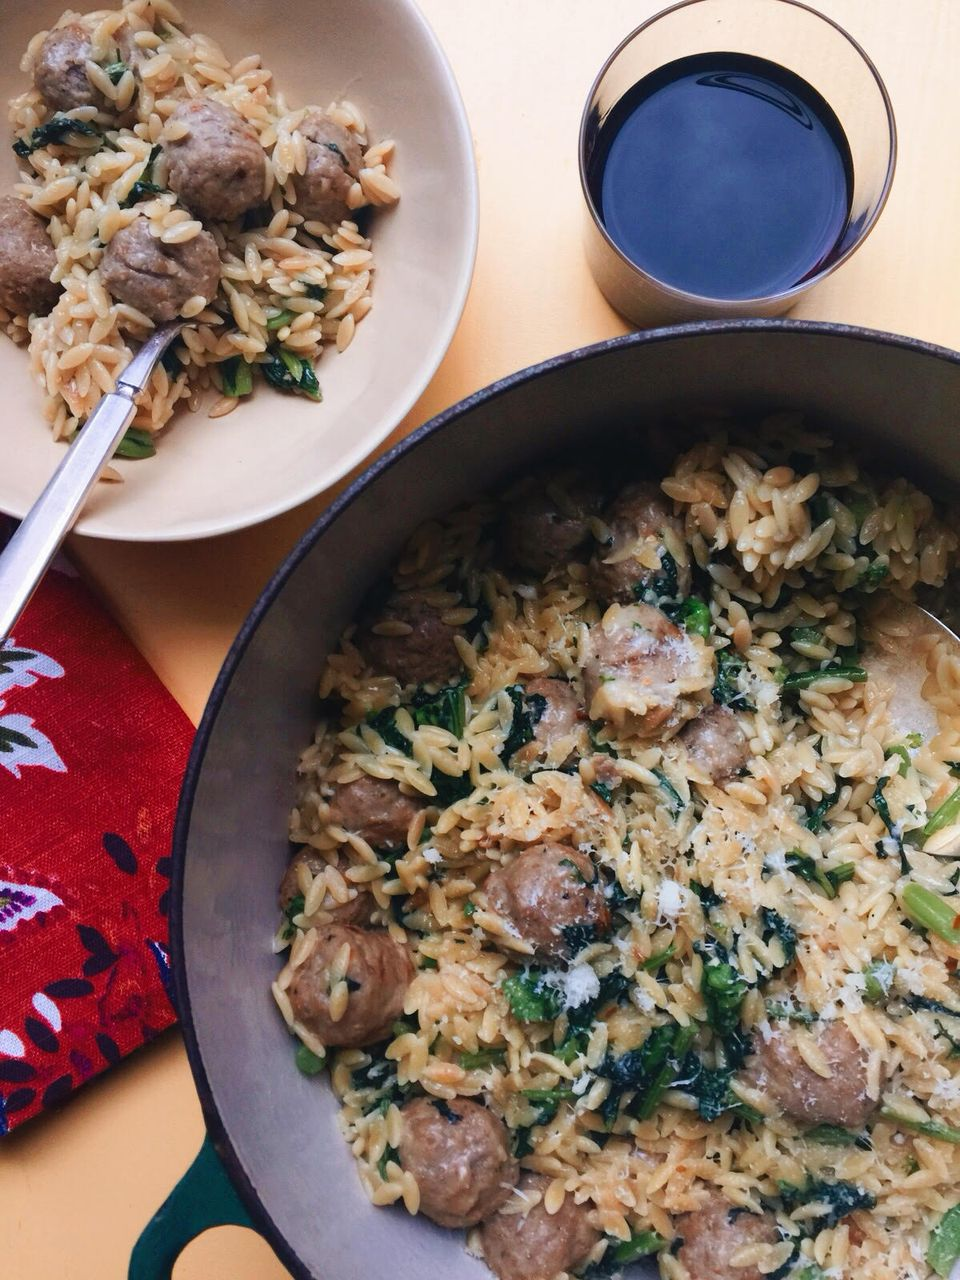 Meatball Orzo One Dish Casserole for NFRA